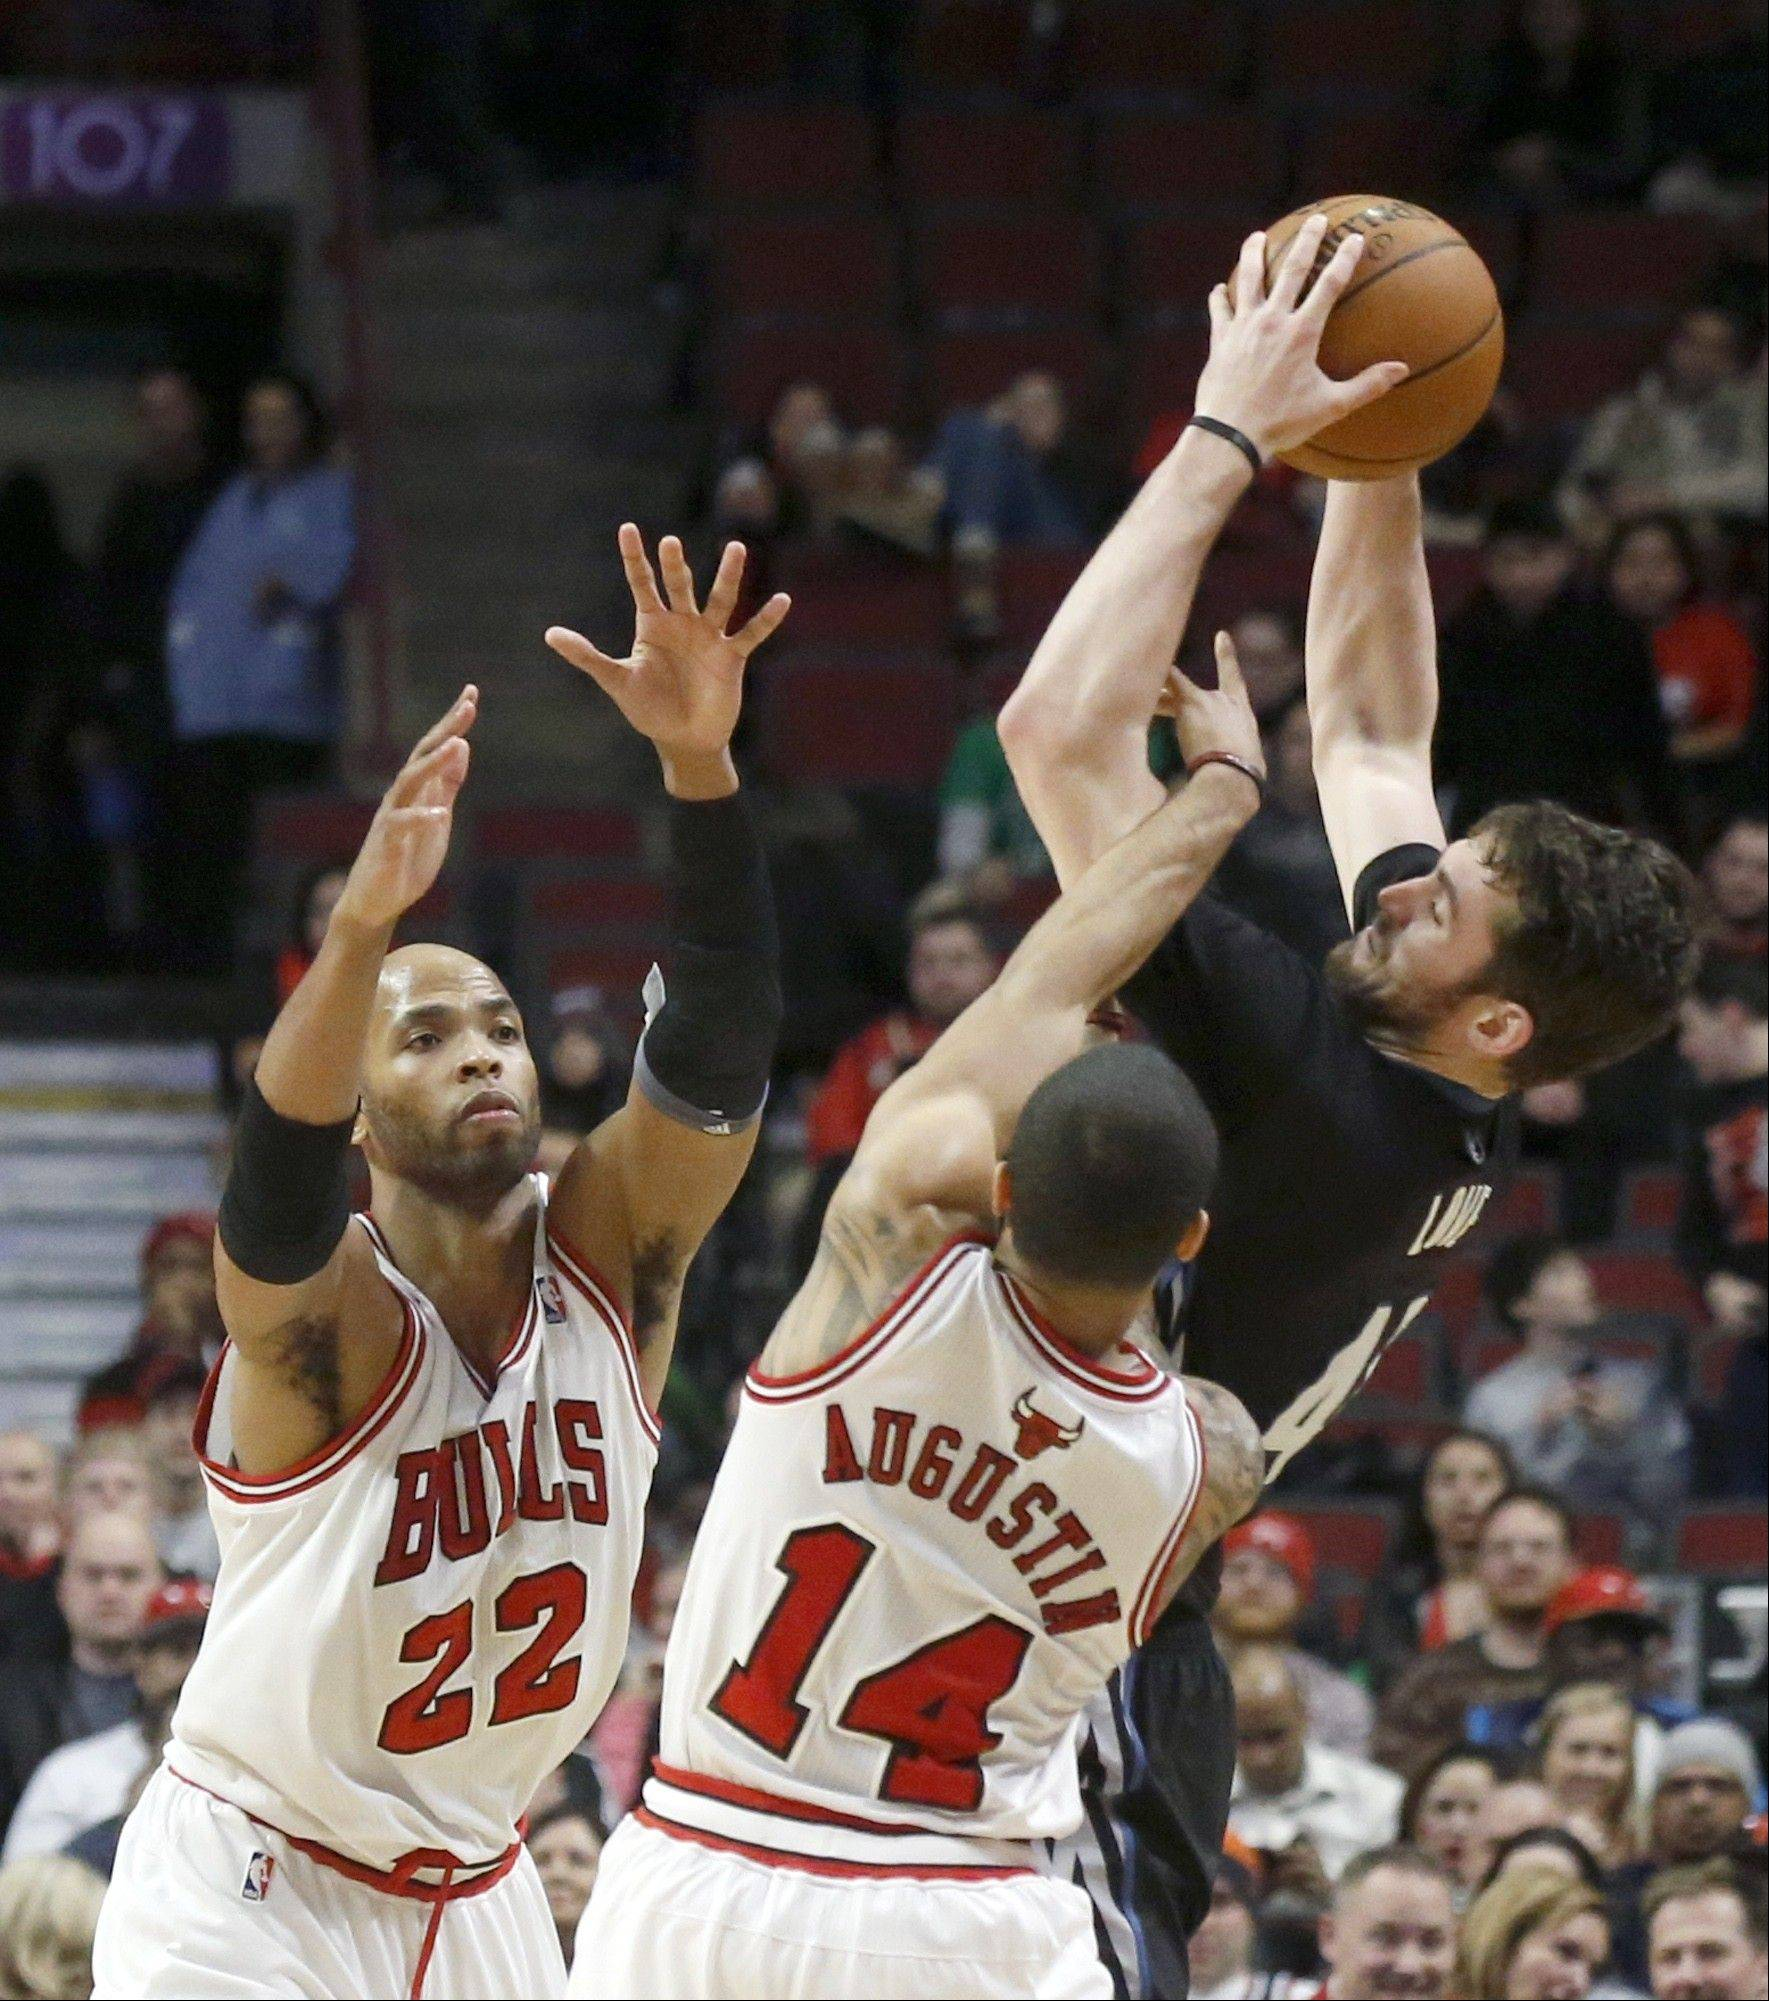 Bulls' efforts amiss minus Noah